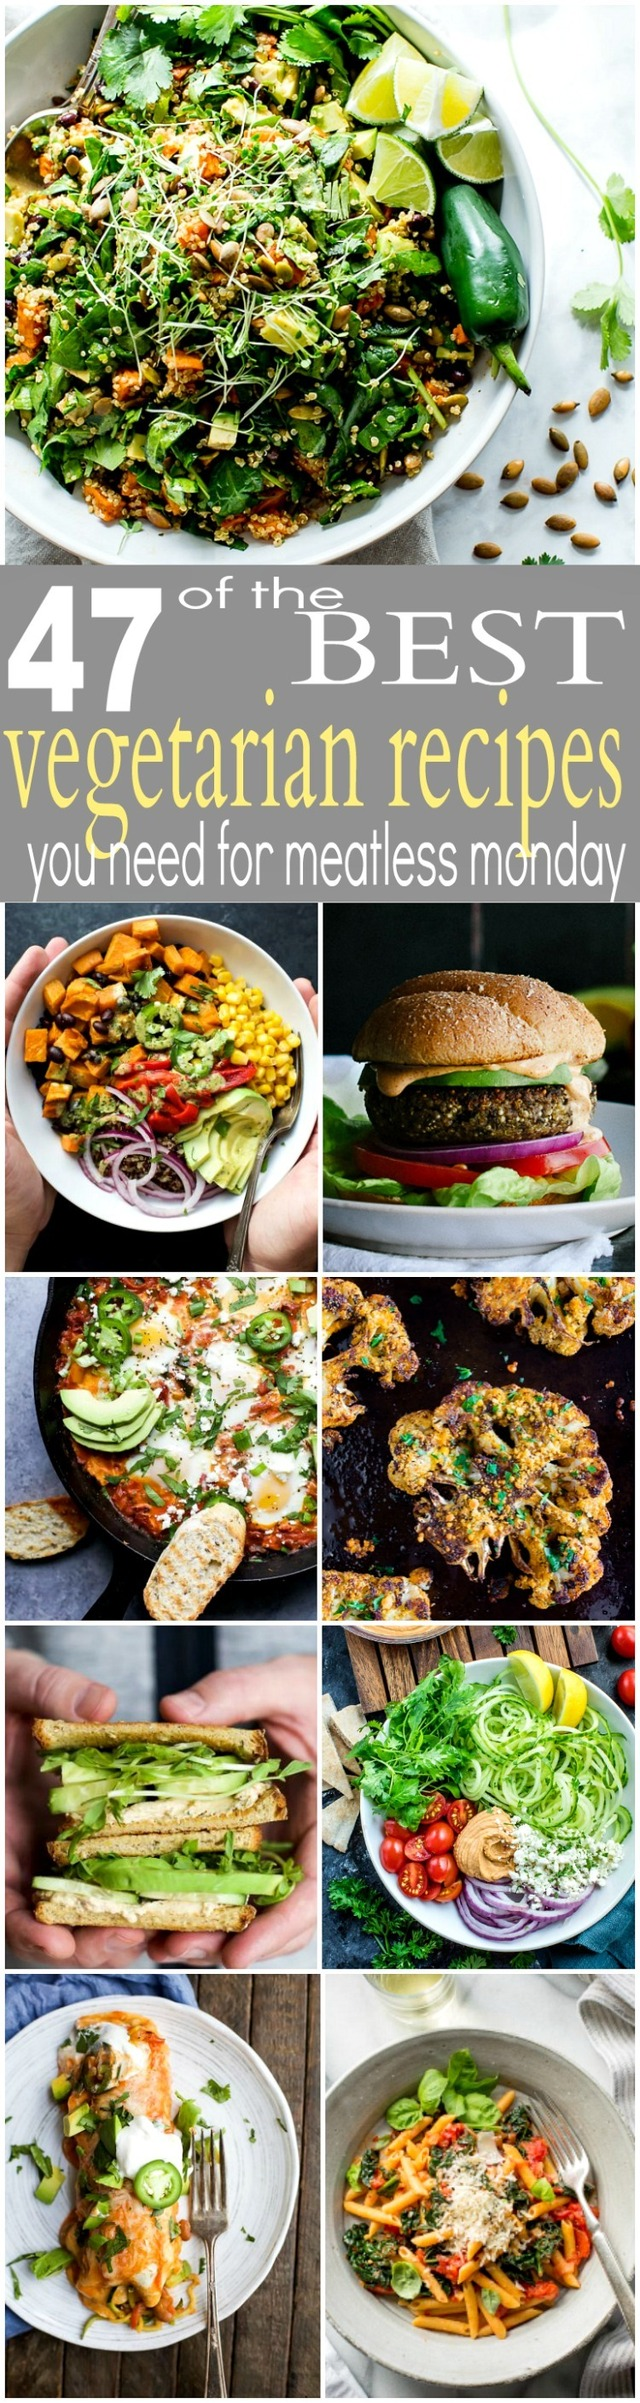 47 of the BEST Vegetarian Recipes you need for Meatless Monday